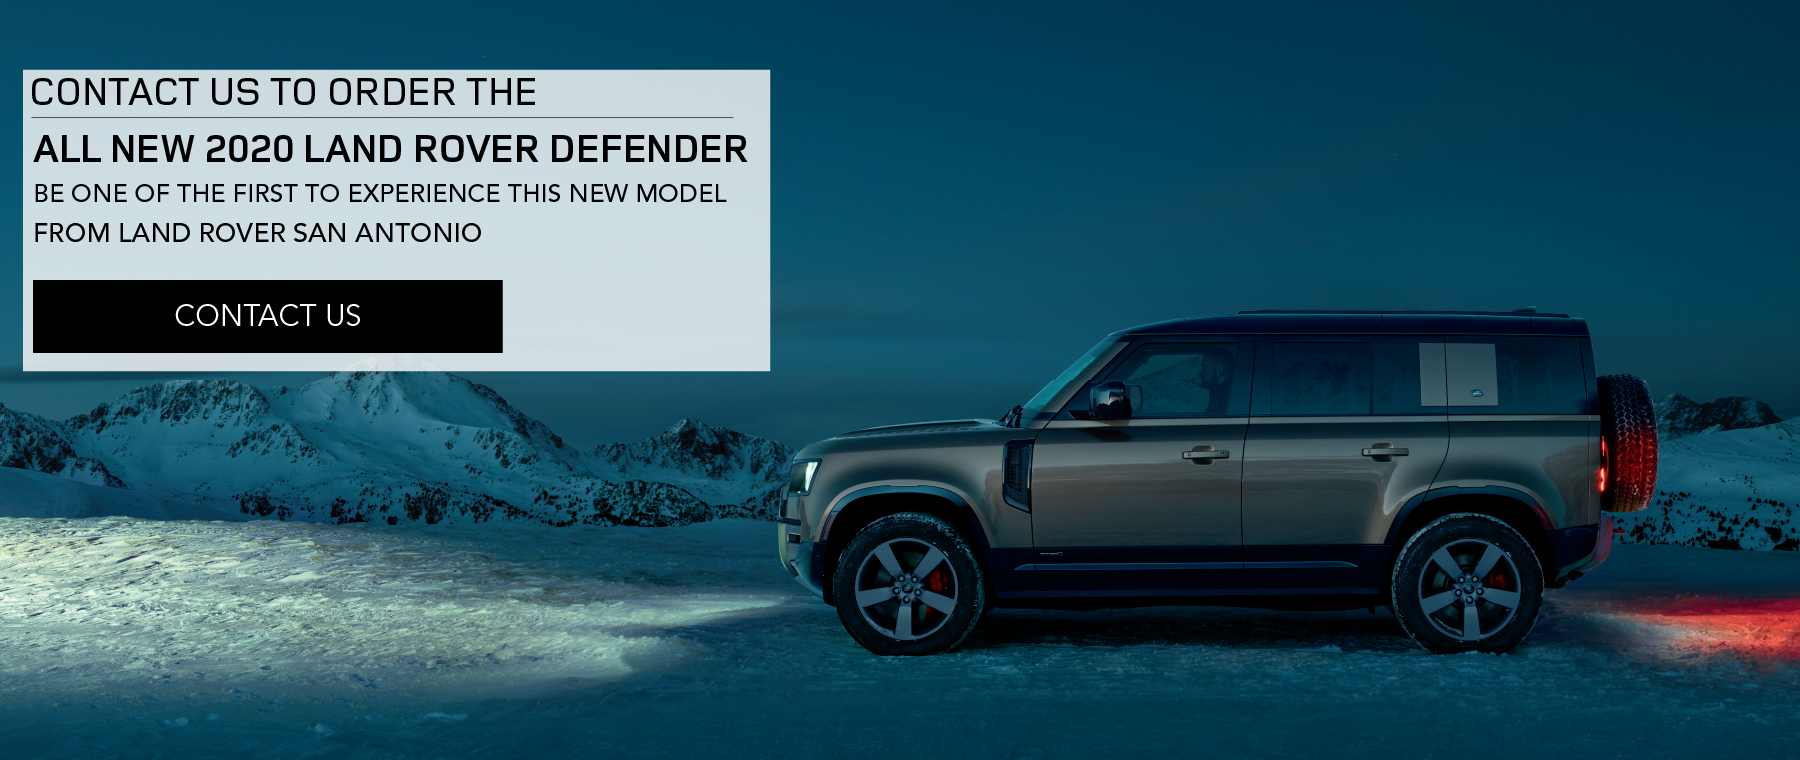 CONTACT US TO ORDER THE ALL NEW 2020 LAND ROVER DEFENDER. BE ONE OF THE FIRST TO EXPERIENCE THIS NEW MODEL FROM LAND ROVER SAN ANTONIO. CONTACT US. 2020 GREEN 110 LAND ROVER DEFENDER PARKED UNDER STARRY SKY.